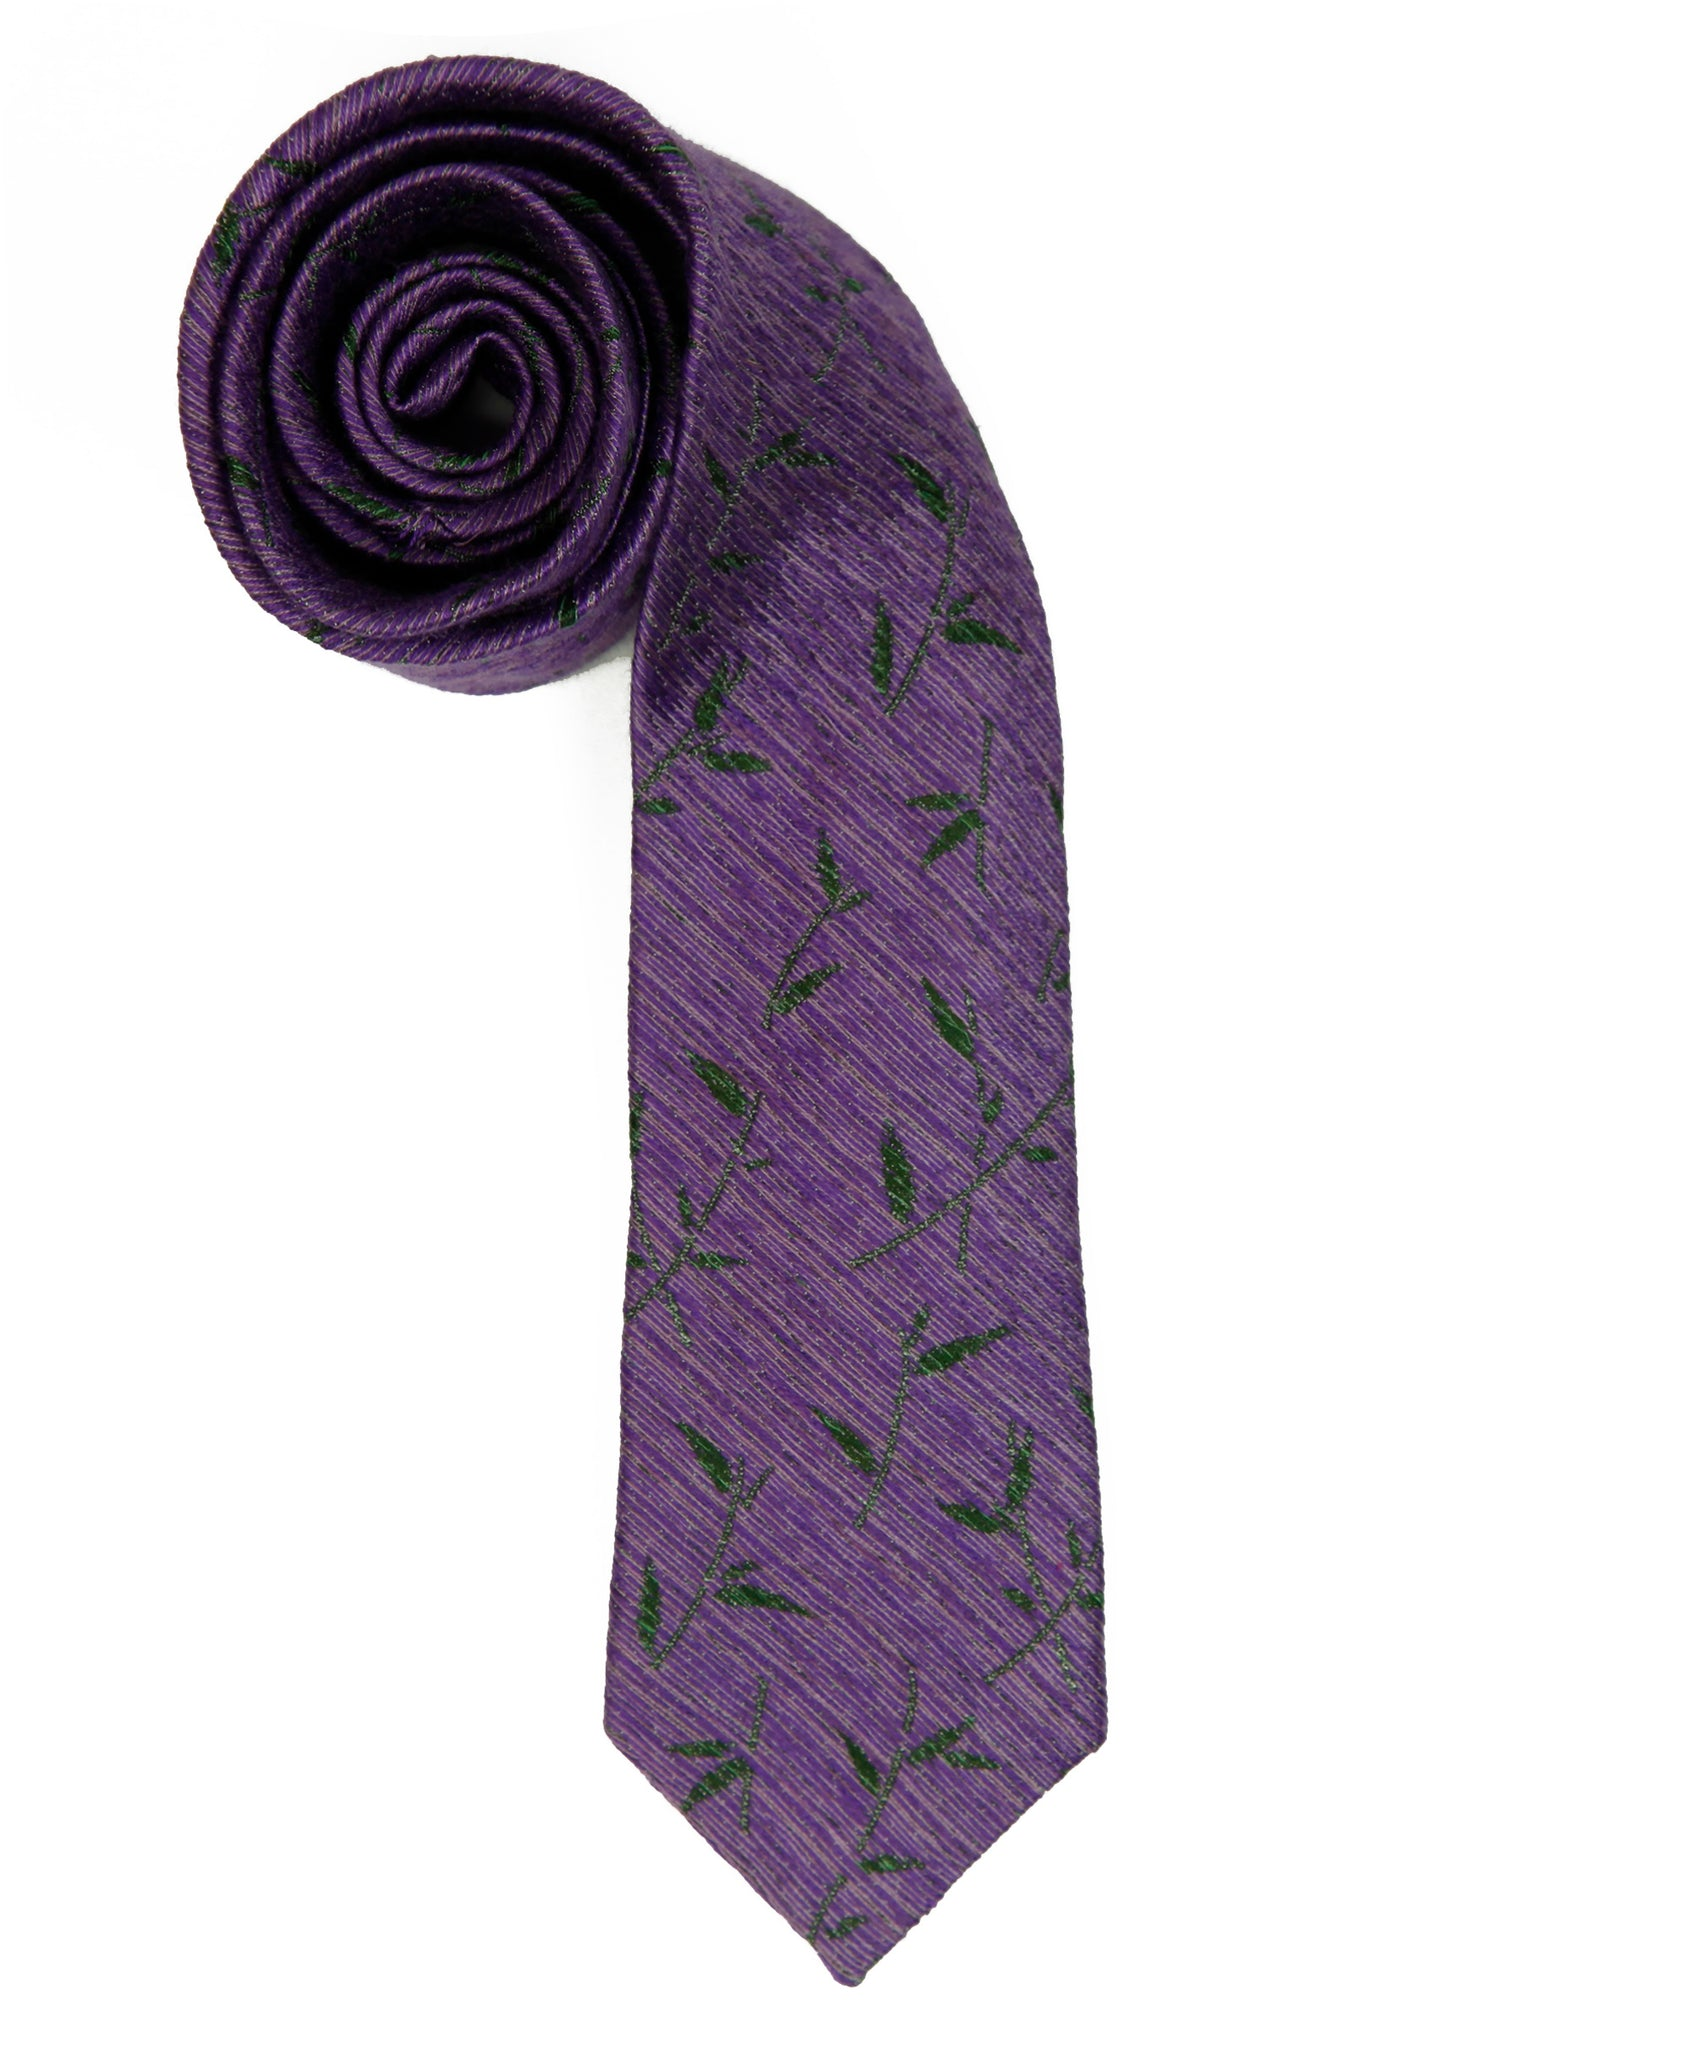 The Orchard Necktie